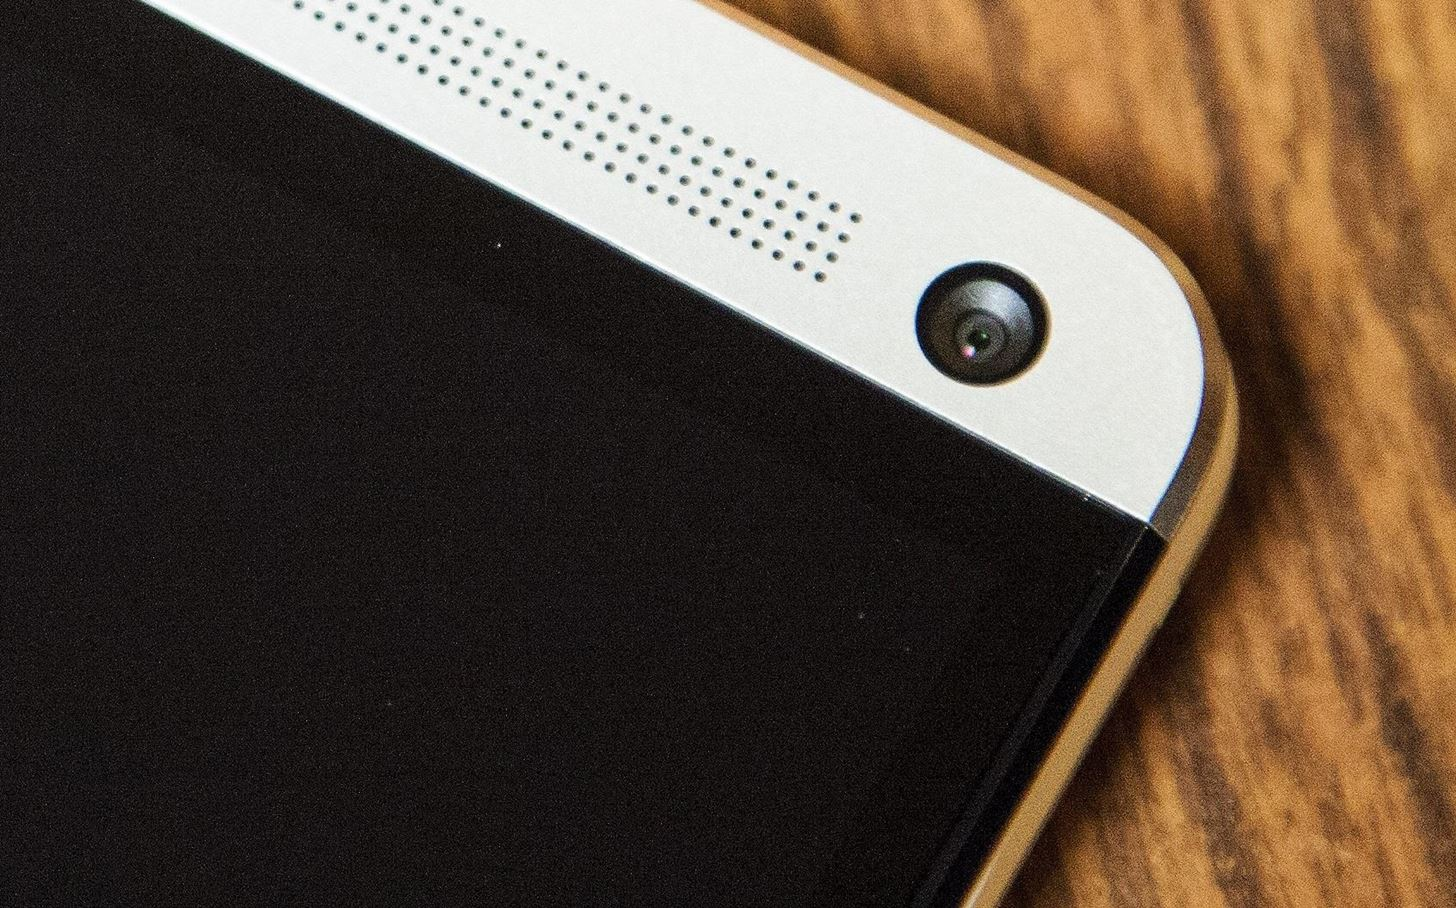 What Every HTC One Owner Should Know About the UltraPixel Camera to Never Miss a Shot